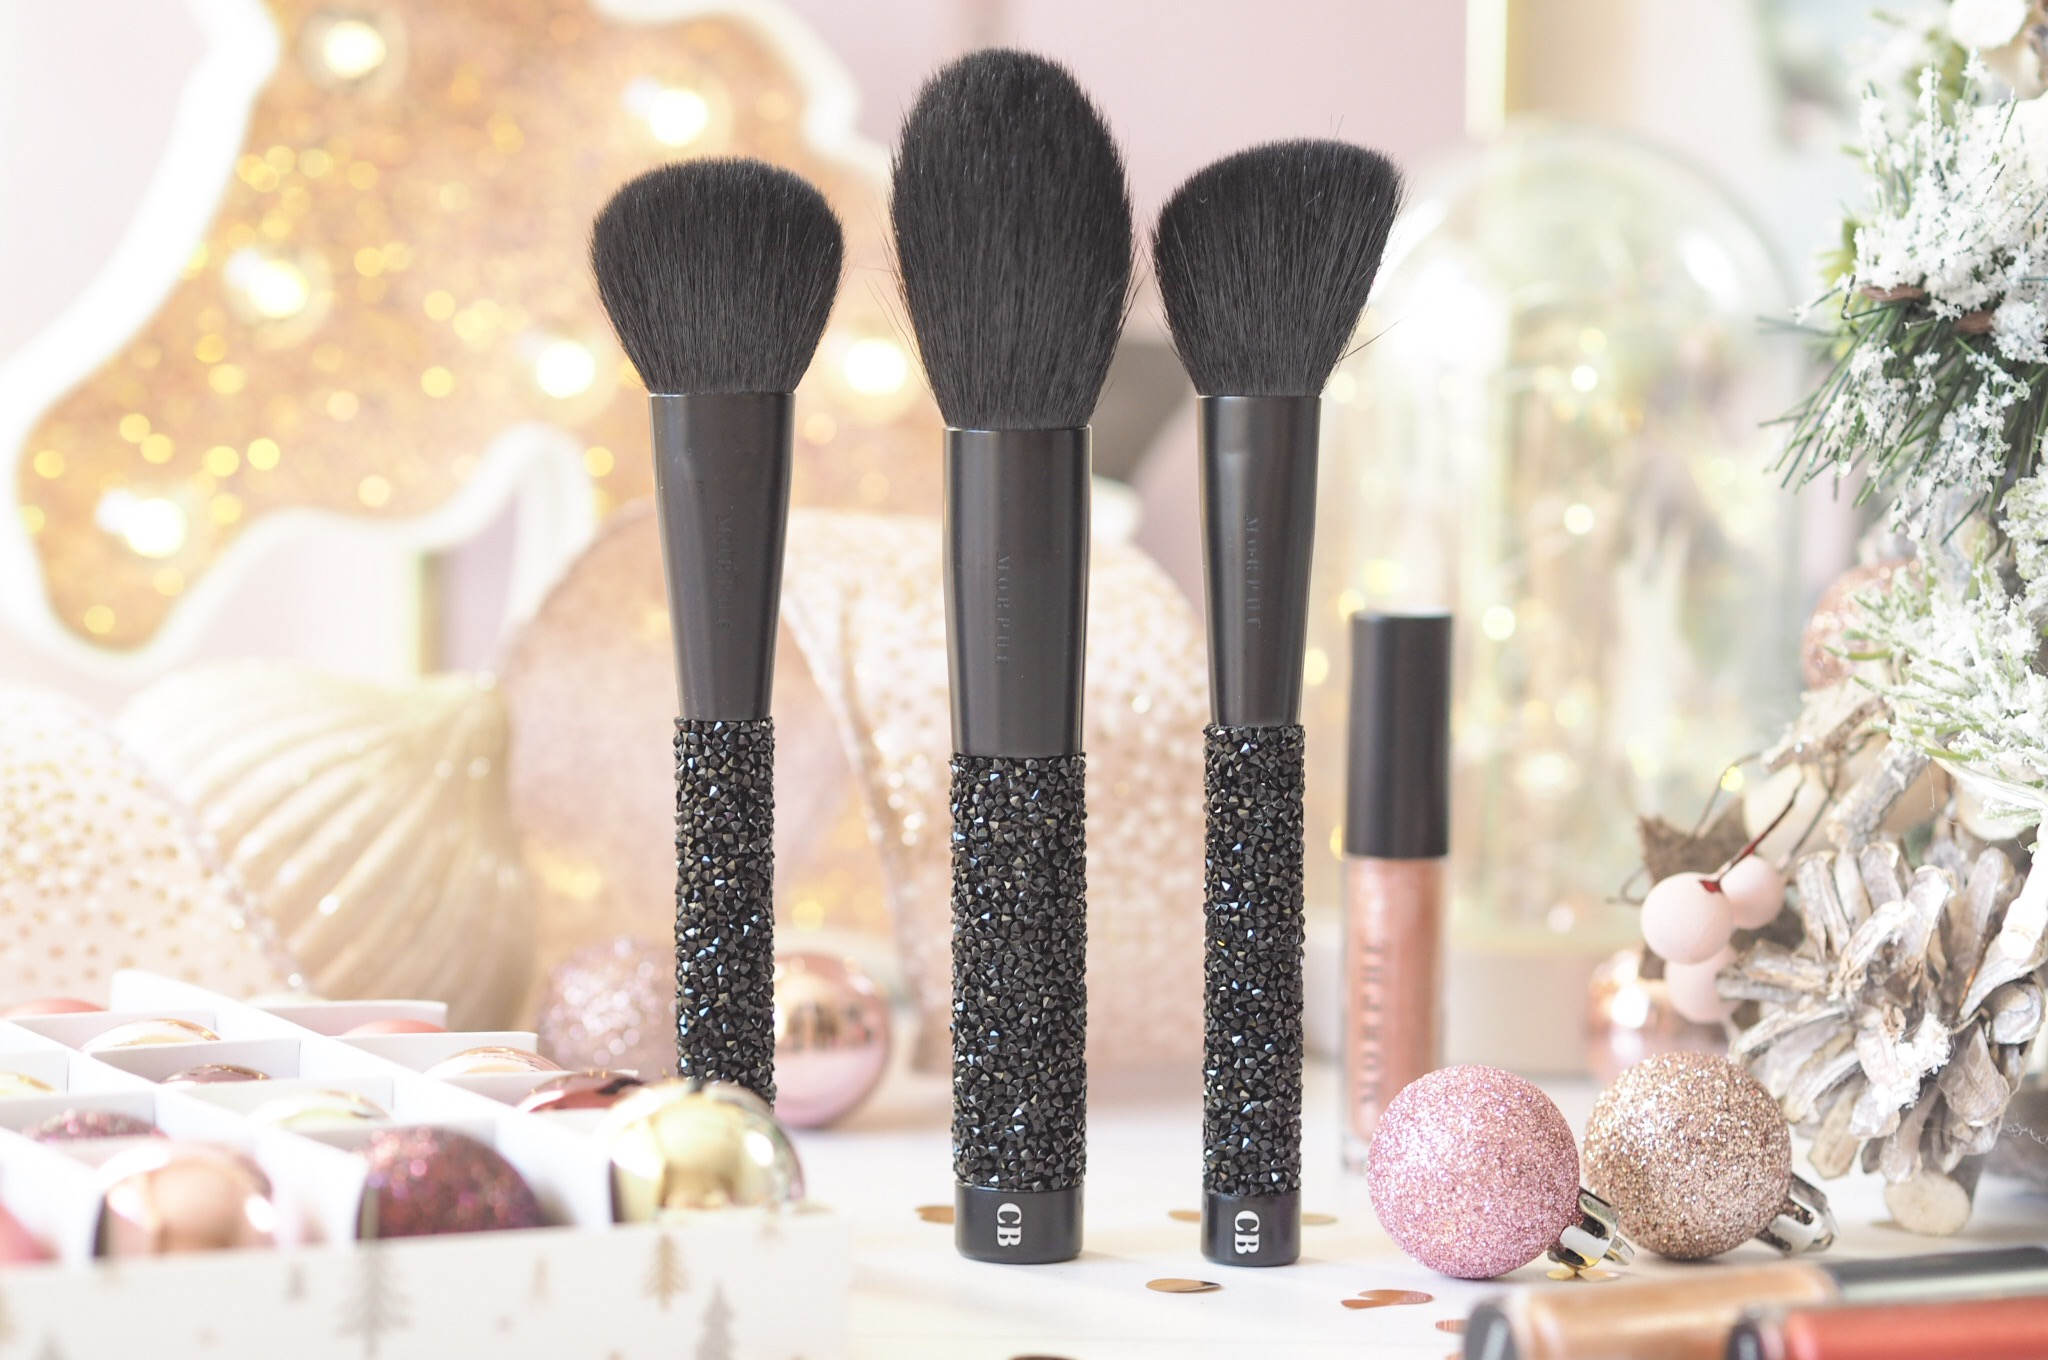 Morphe Bling Fling Brush Set